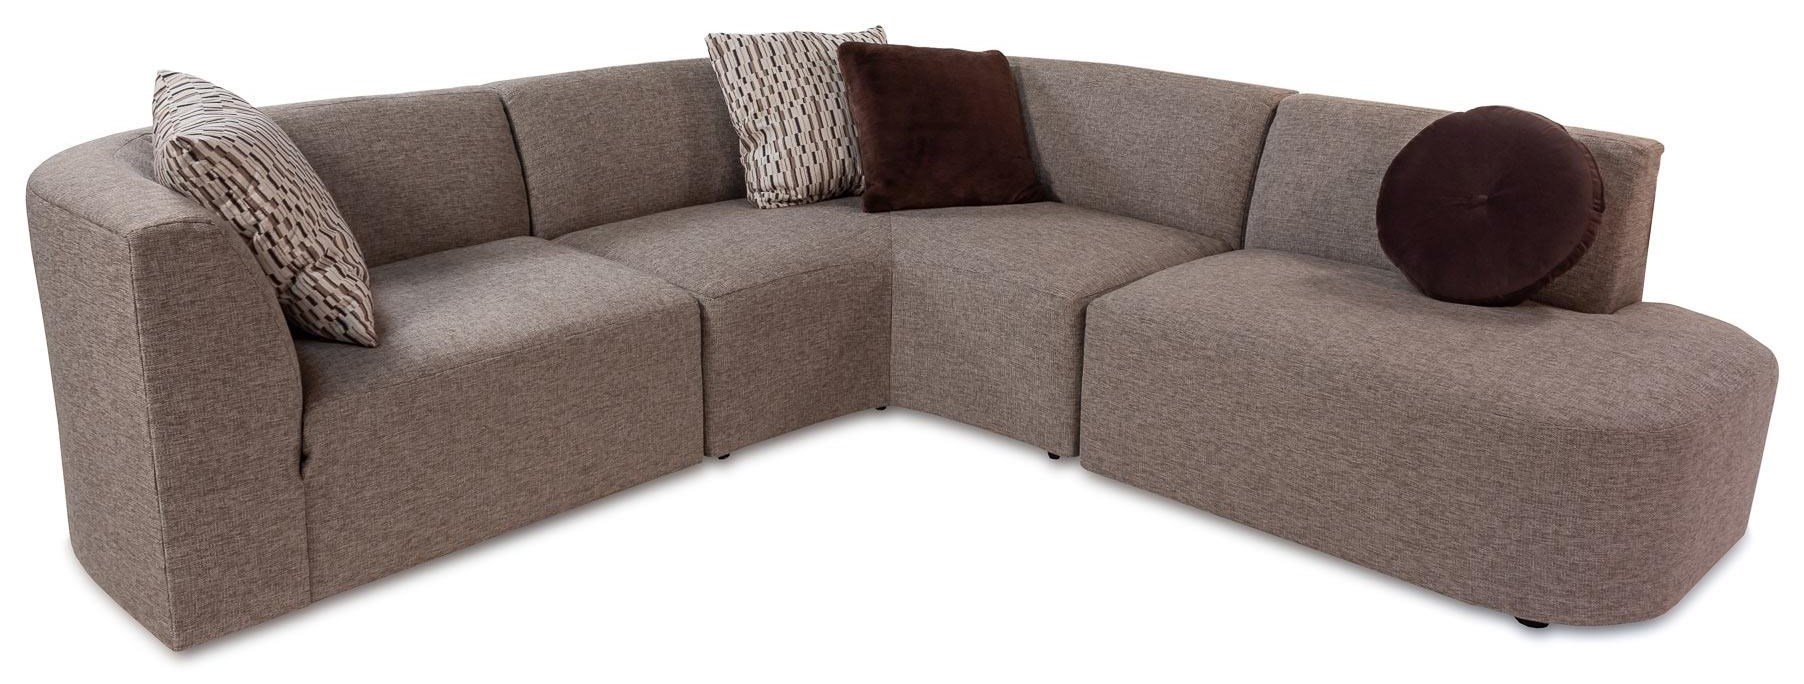 Sofa Modern Techno Modern 3 Piece Sectional Sofa With Bumper Chaise By Jonathan Louis At Rotmans